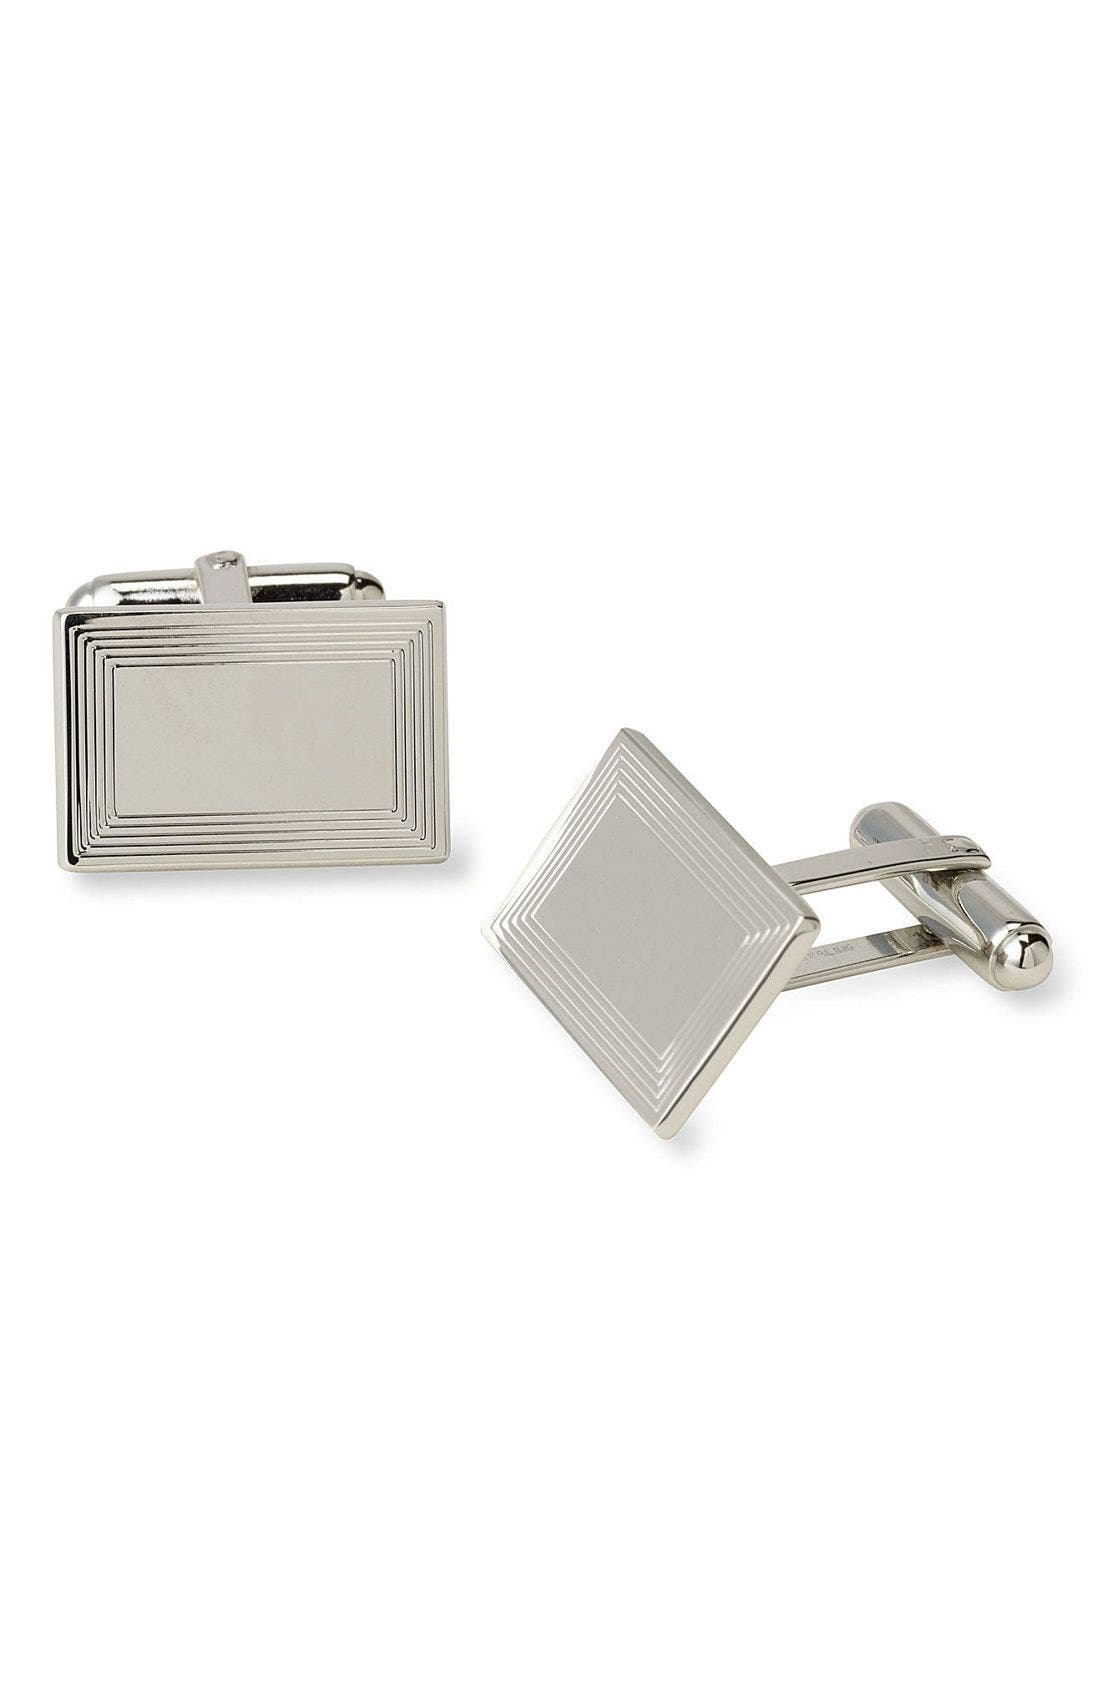 Alternate Image 1 Selected - David Donahue Cuff Links